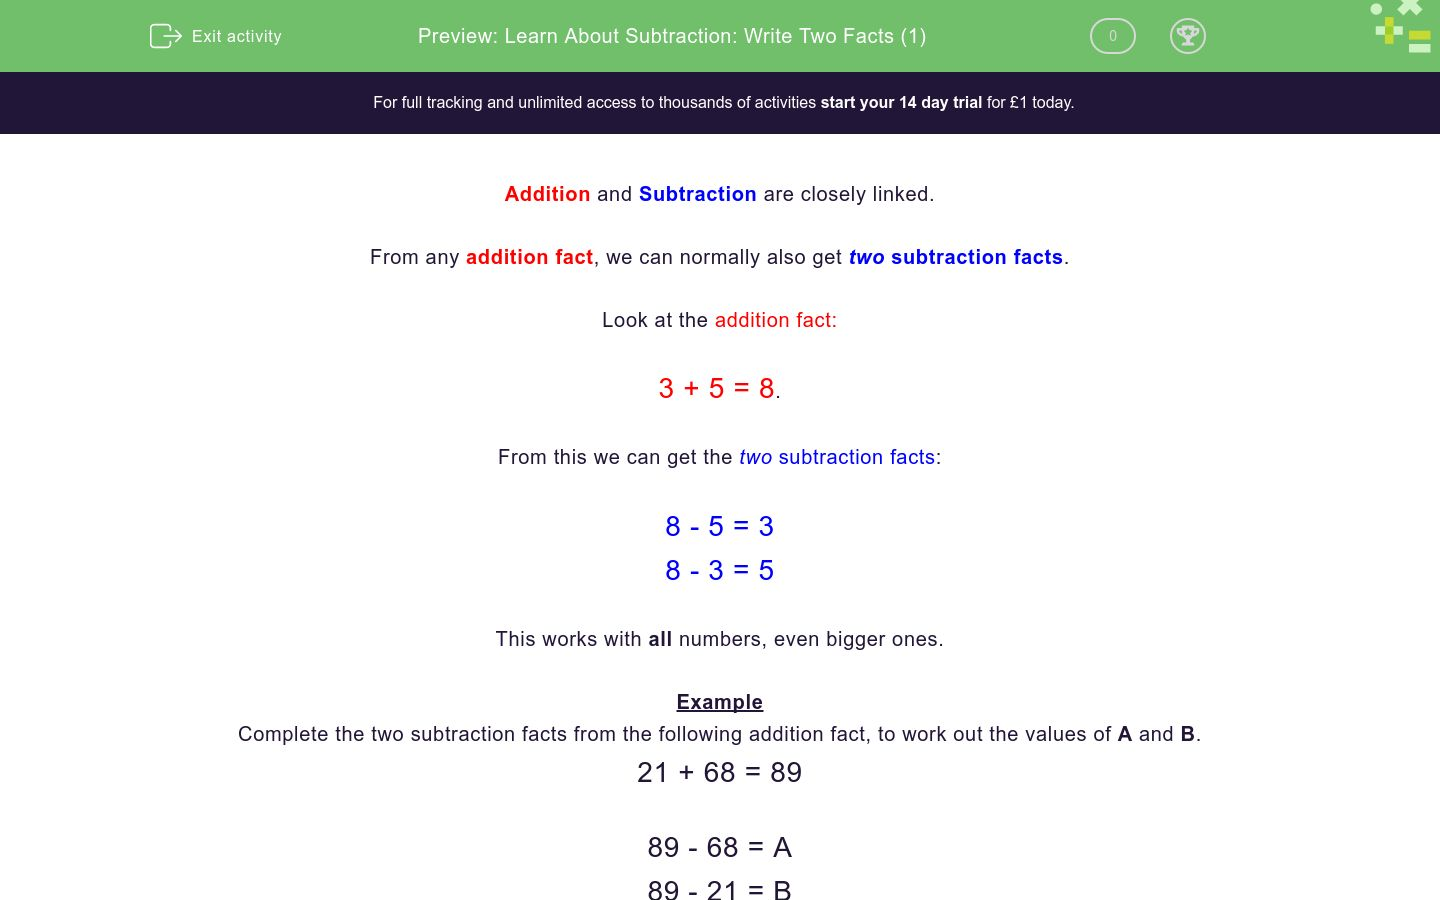 'Learn About Subtraction: Write Two Facts (1)' worksheet